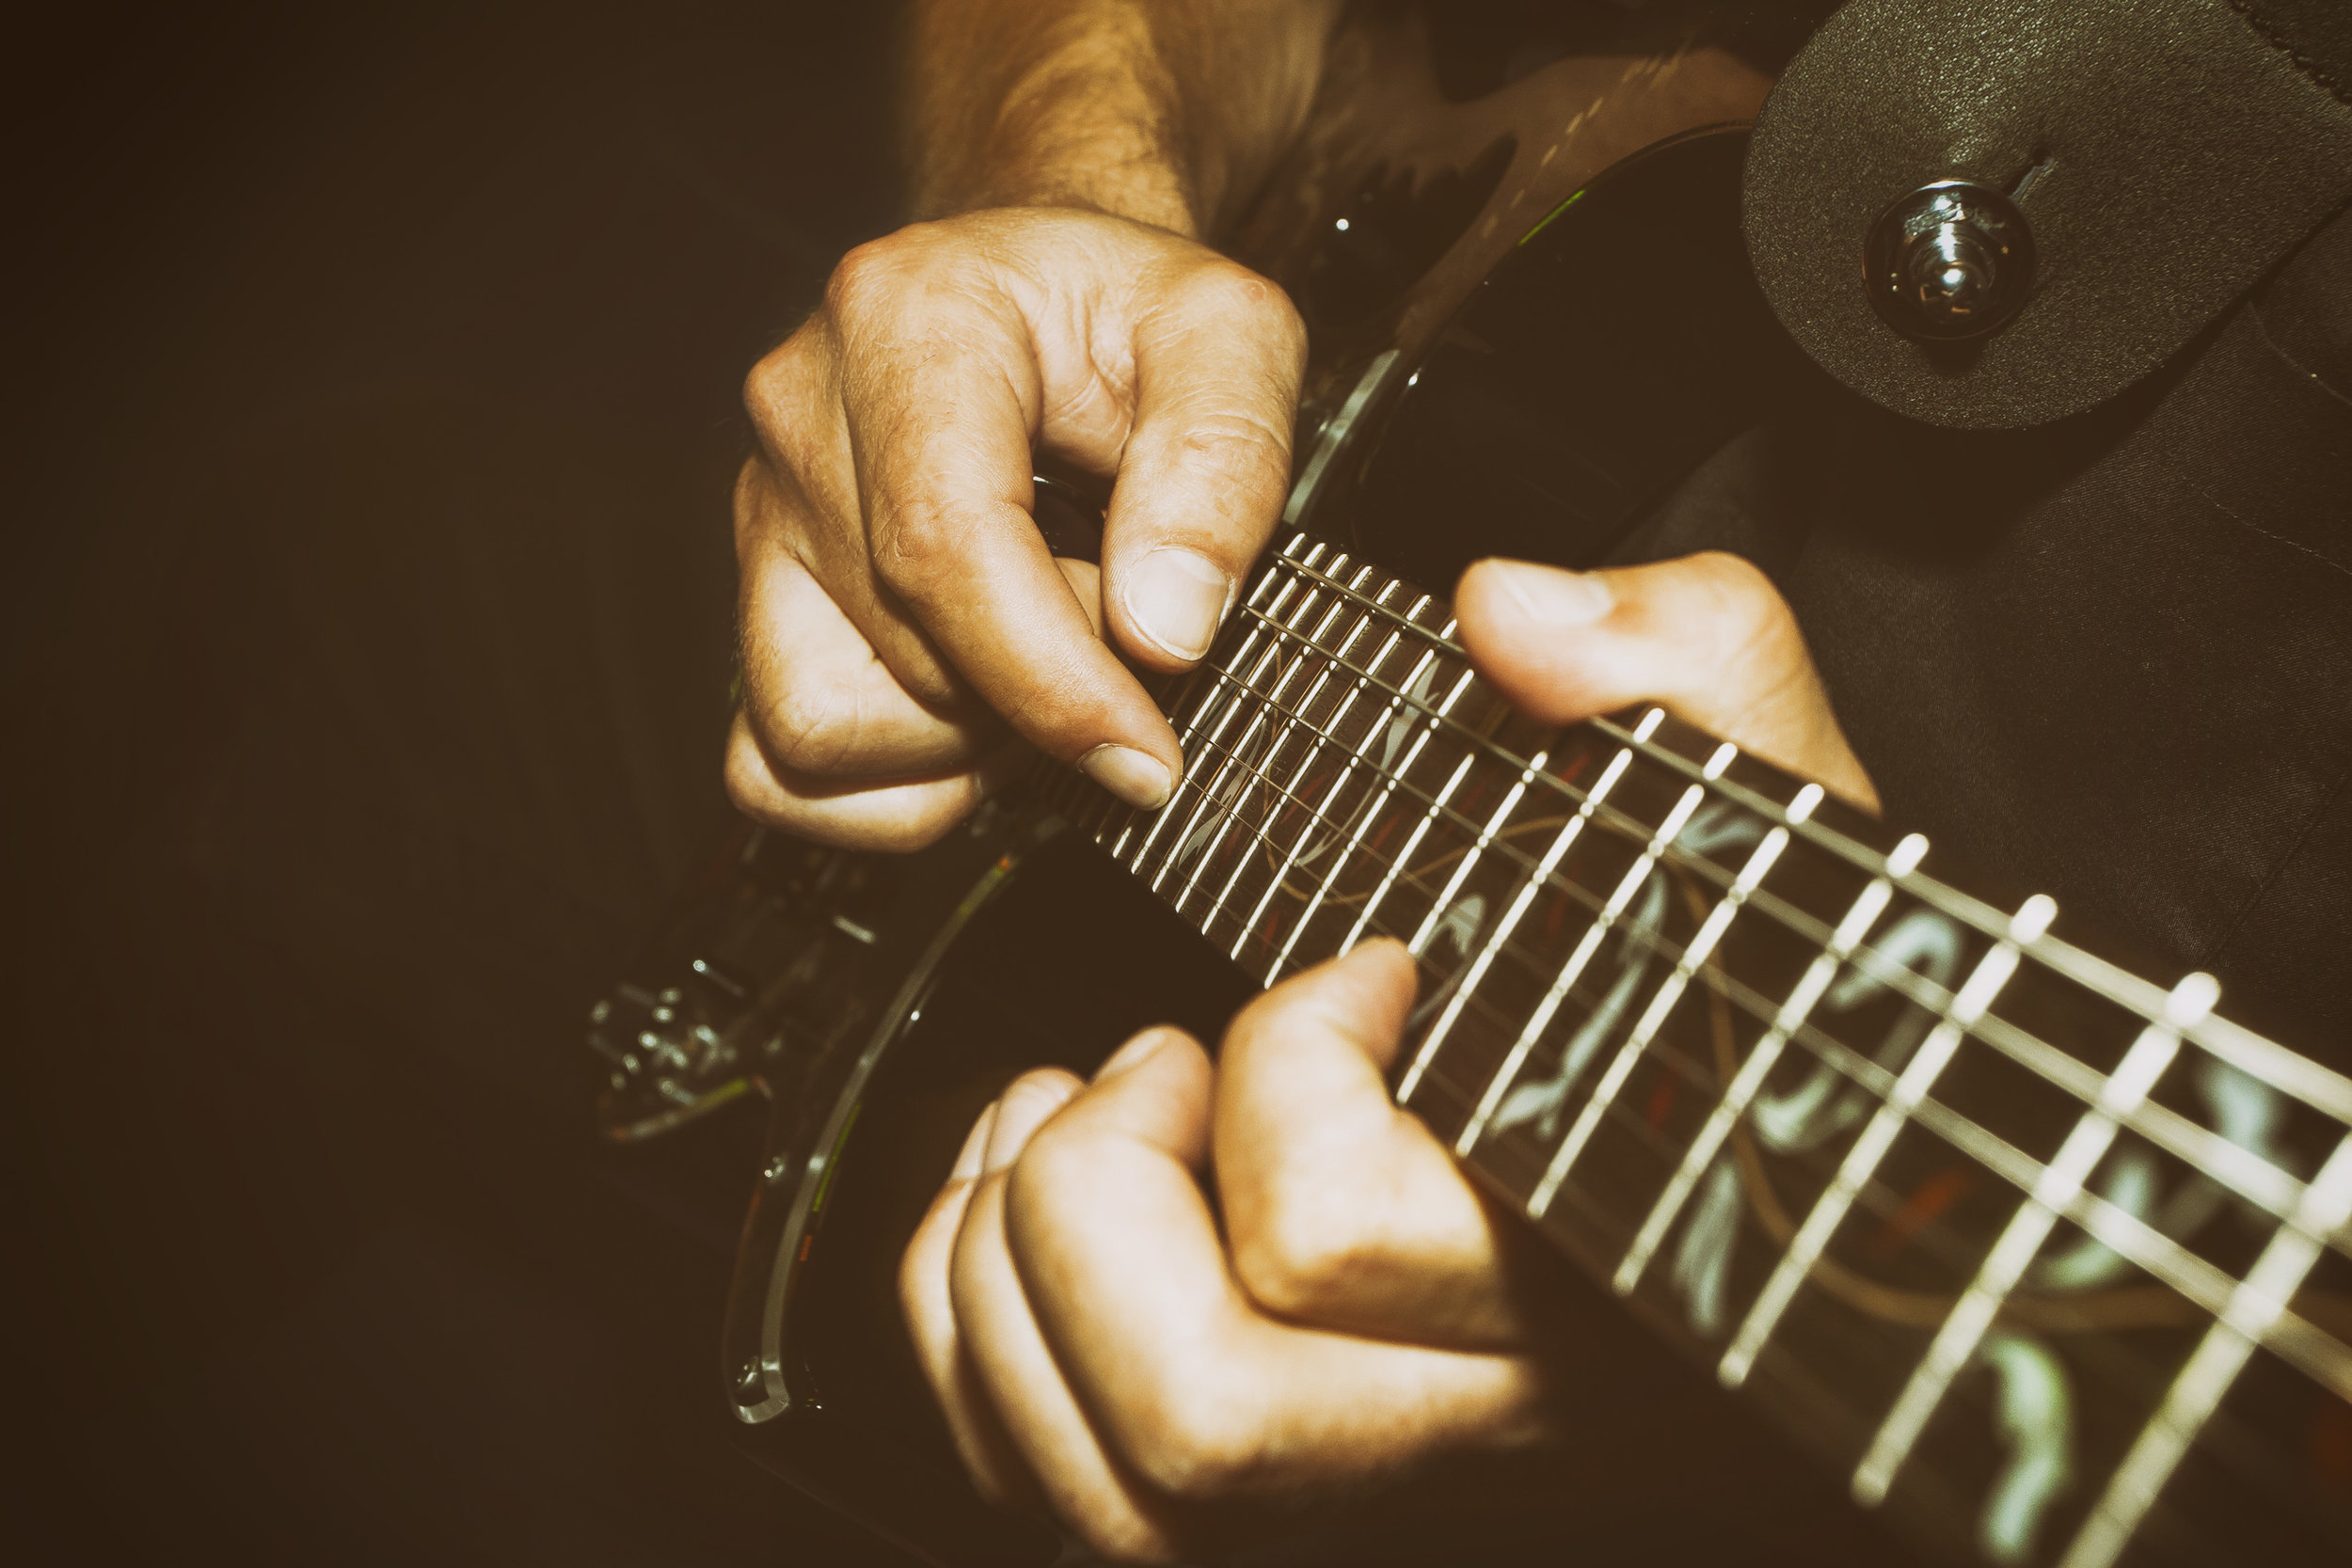 boss-fight-free-high-quality-stock-images-photos-photography-guitar-song.jpg